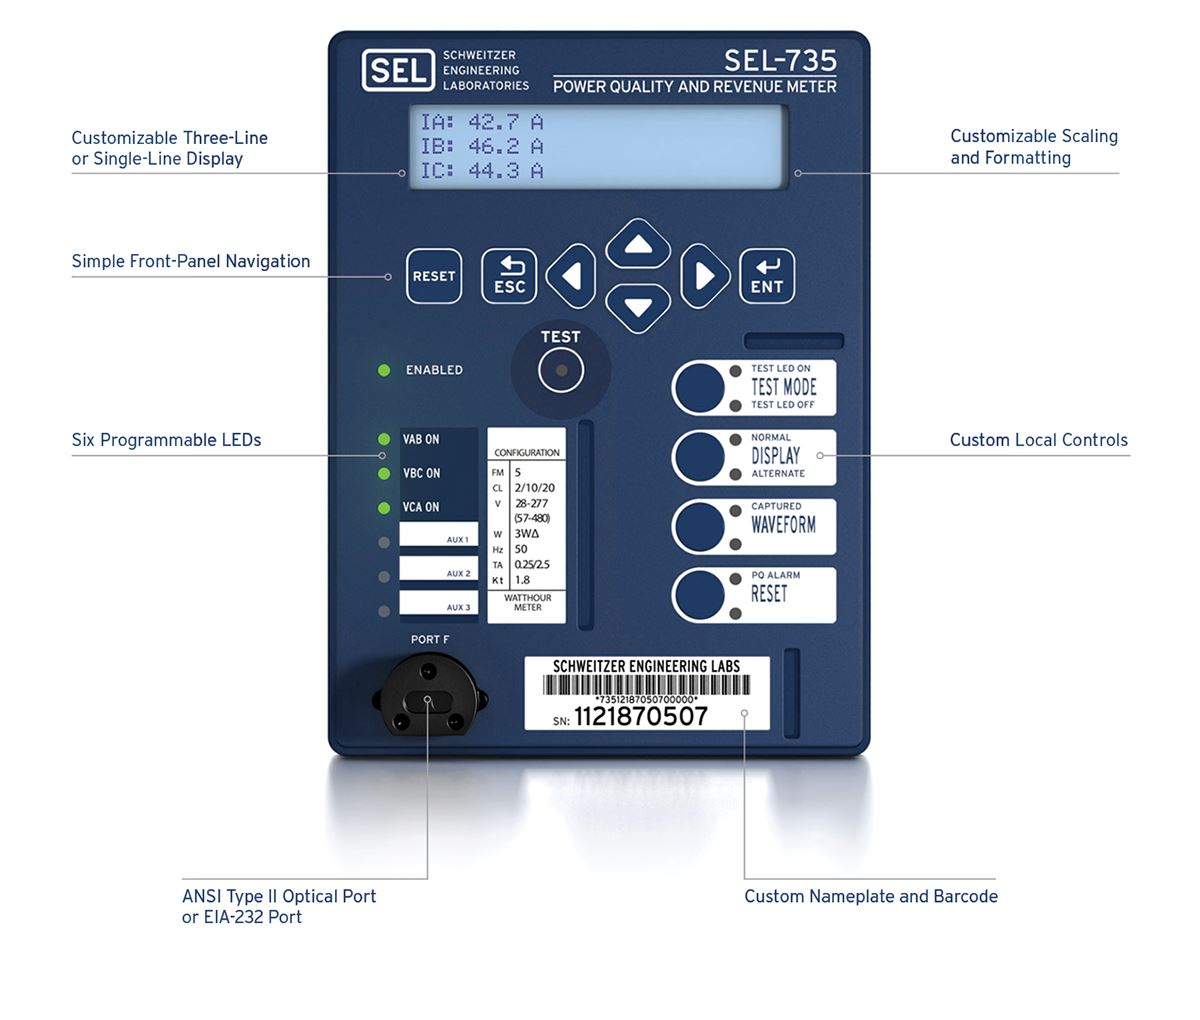 sel 735 power quality and revenue meter schweitzer engineeringsel 735 power quality and revenue meter schweitzer engineering laboratories